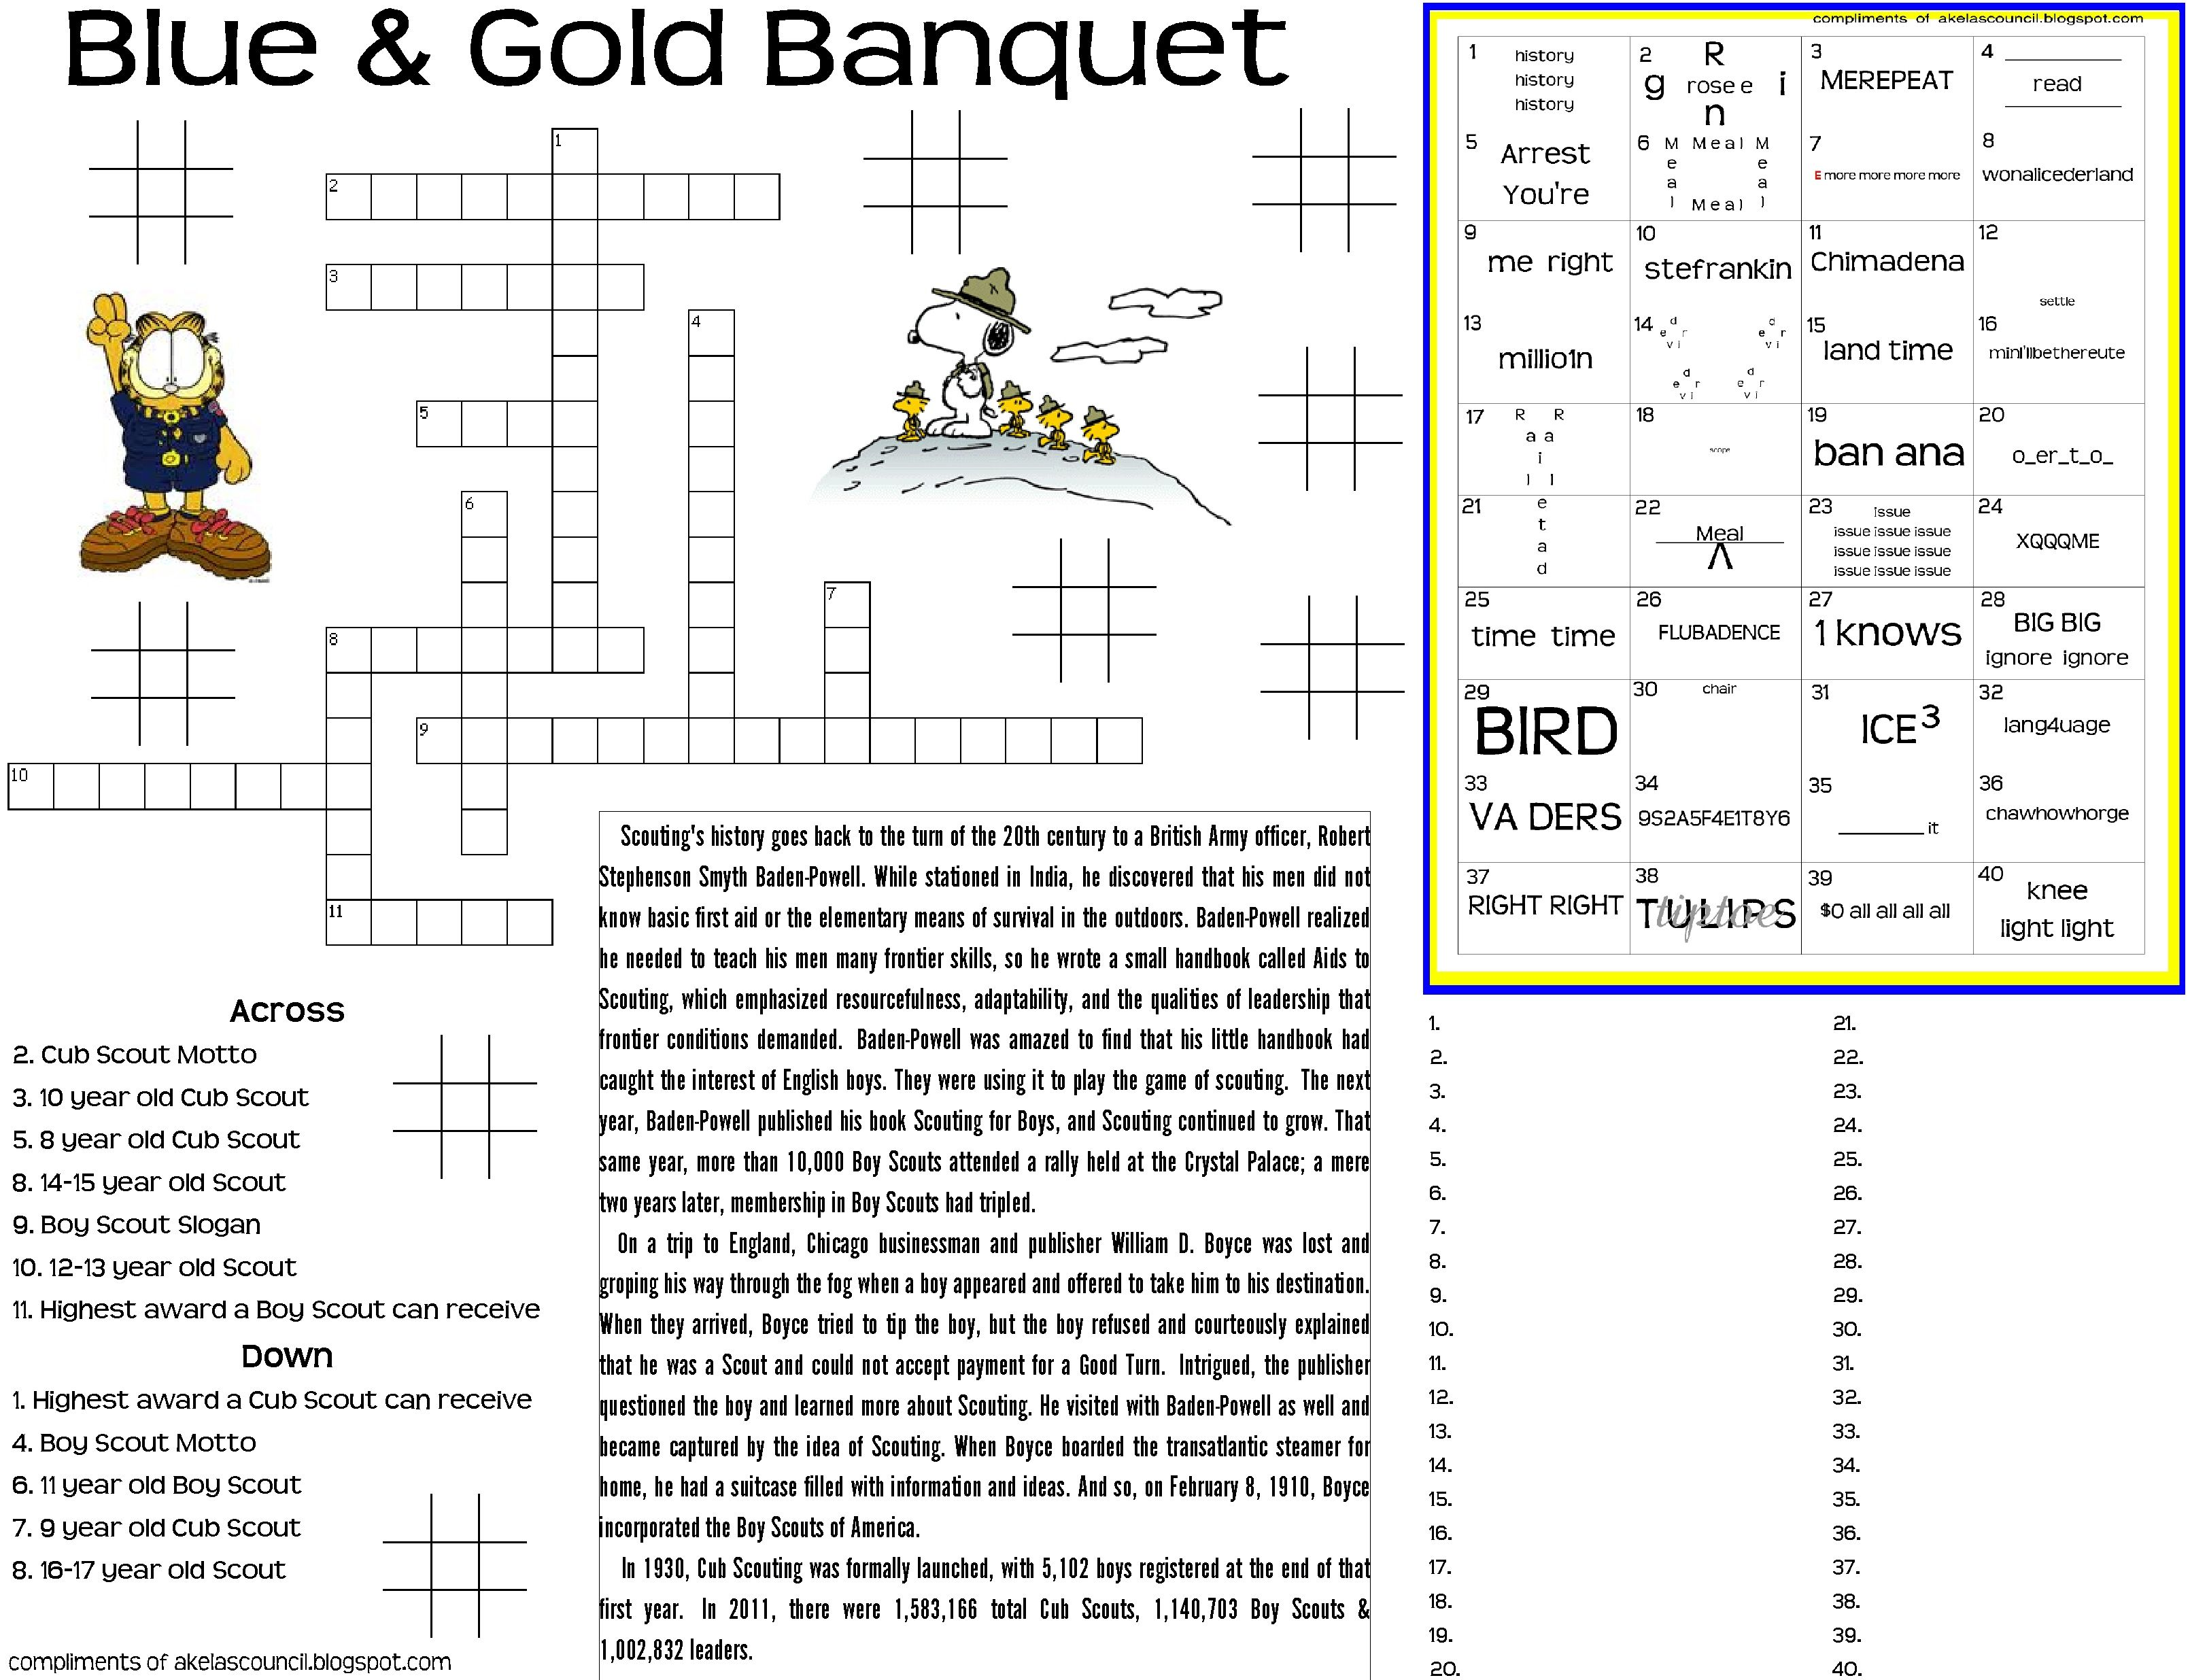 Worksheets Cub Scout Belt Loop Worksheets blue gold puzzle placemat 8 5x11 high quality jpg akelas council cub scout leader training and banquet dinner preopener printable worksheet for the blue